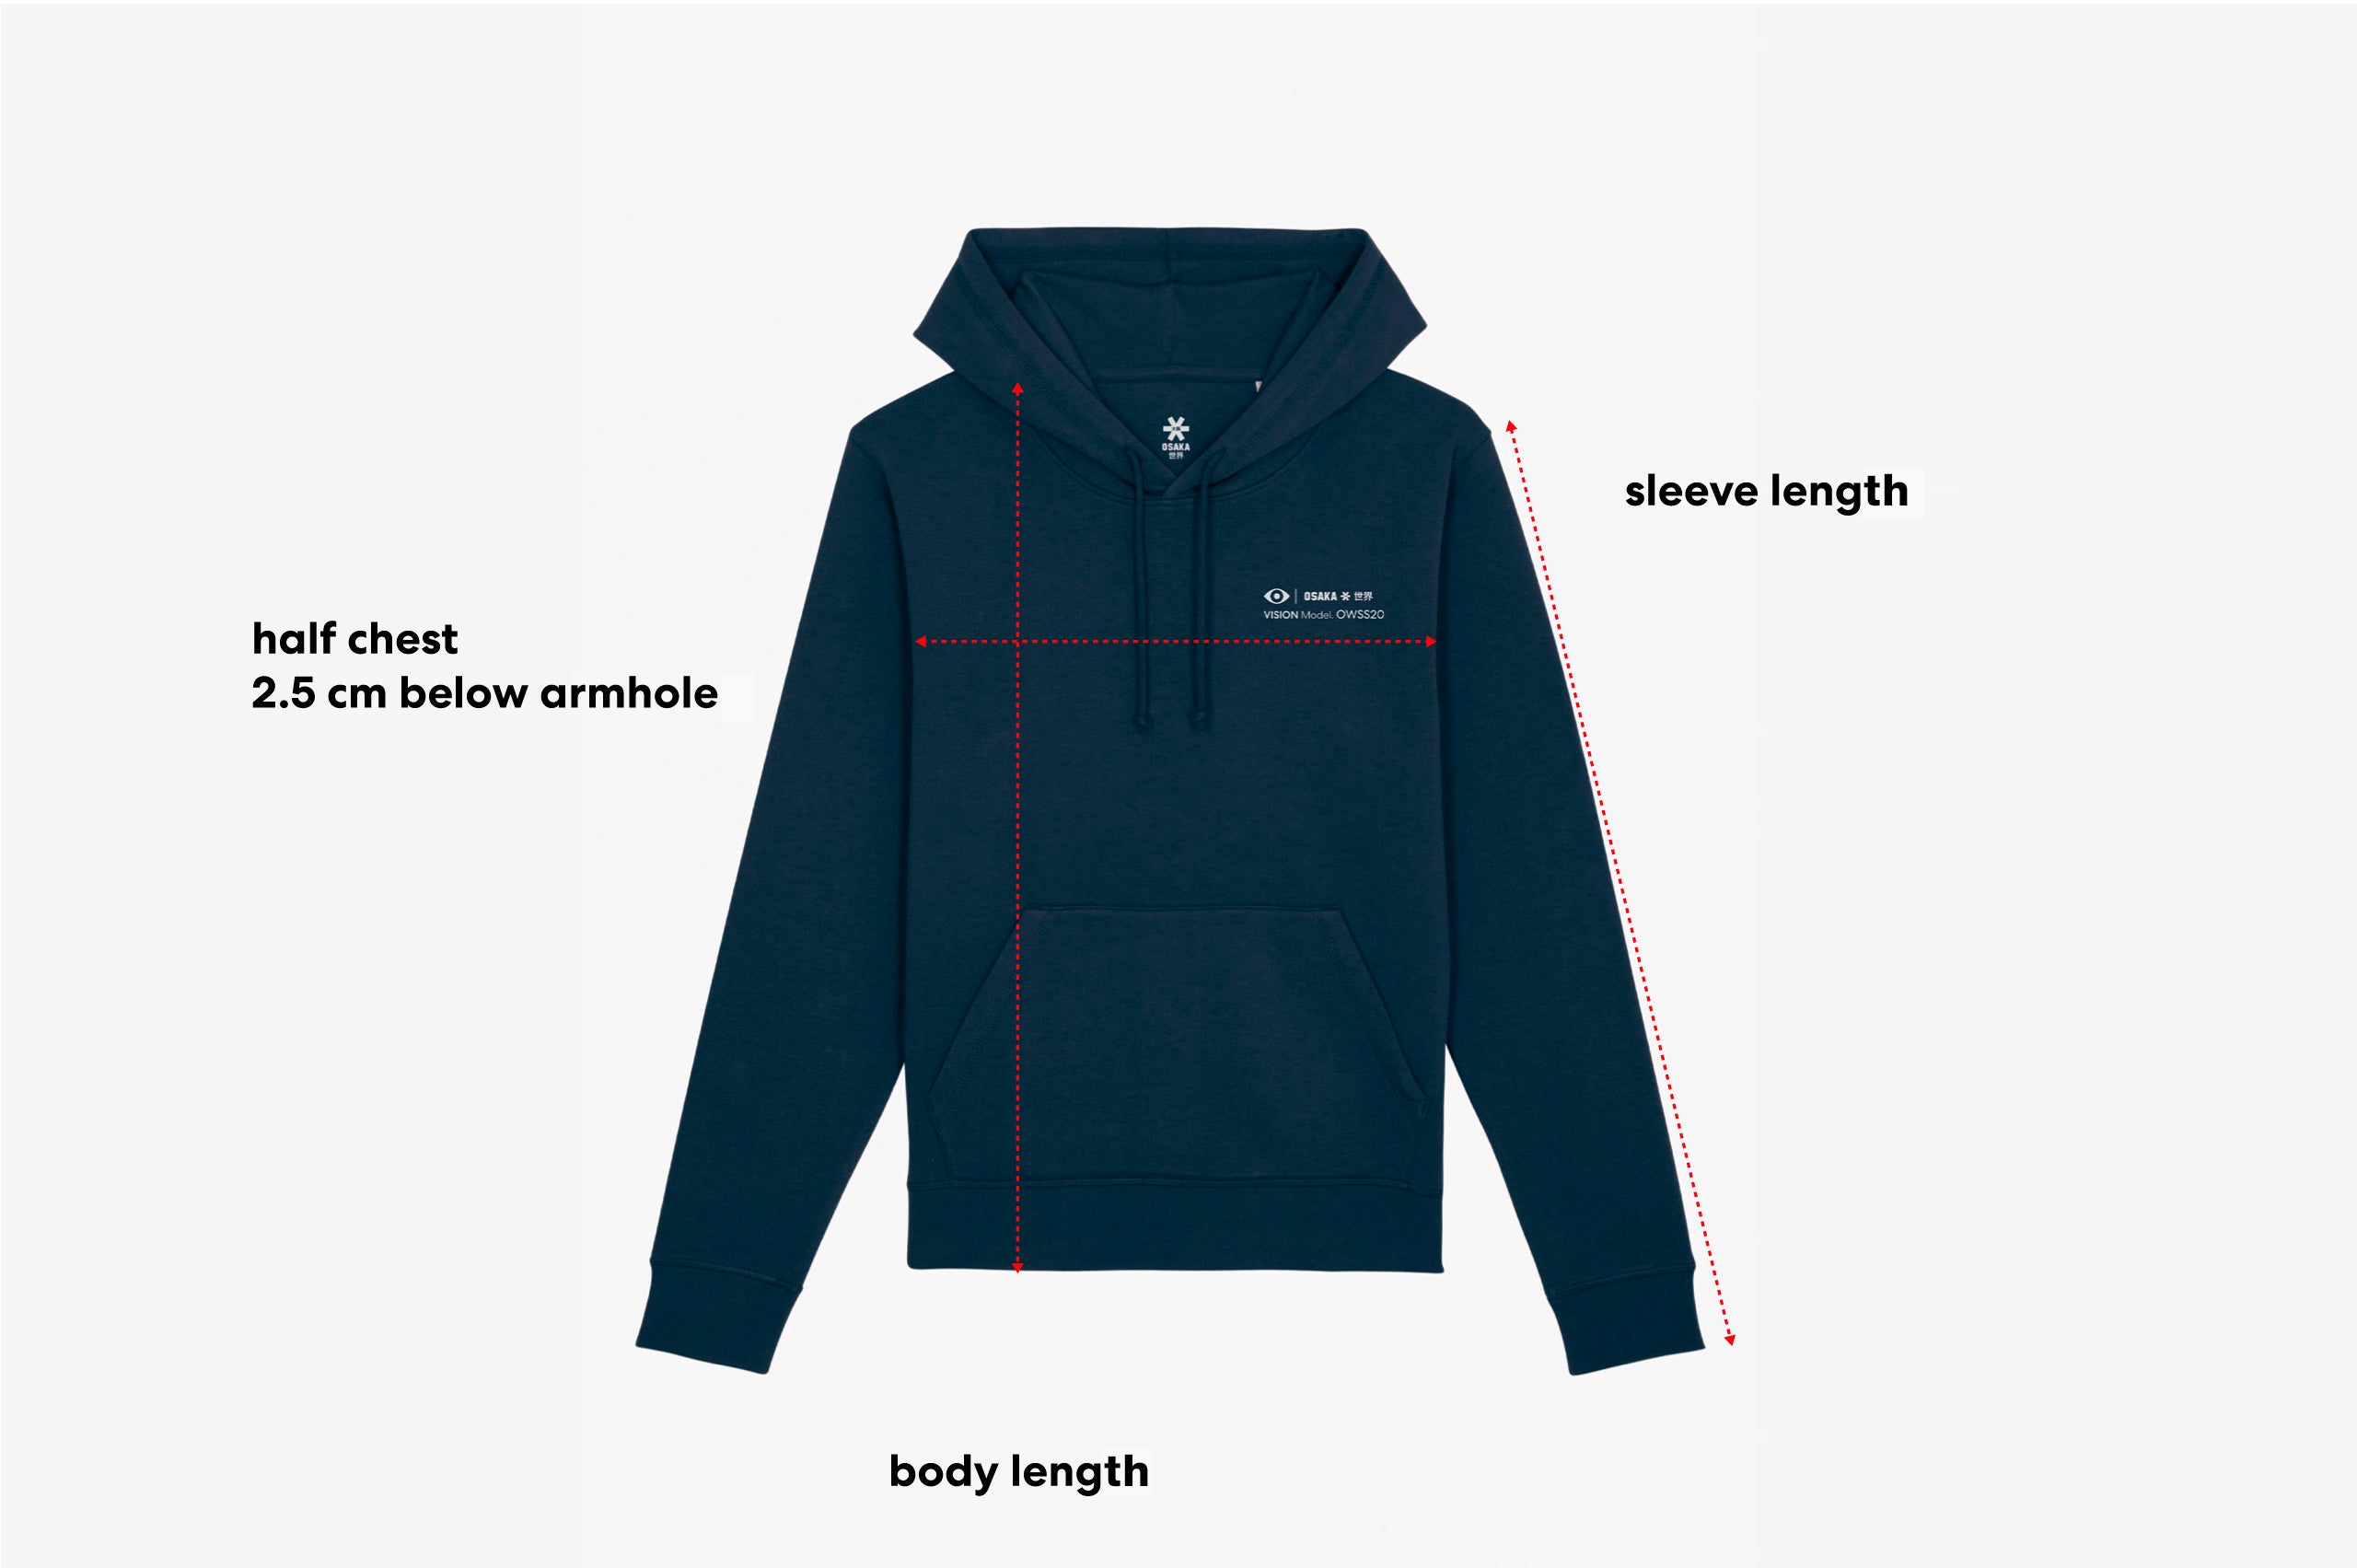 Size guide of an adult hoodie